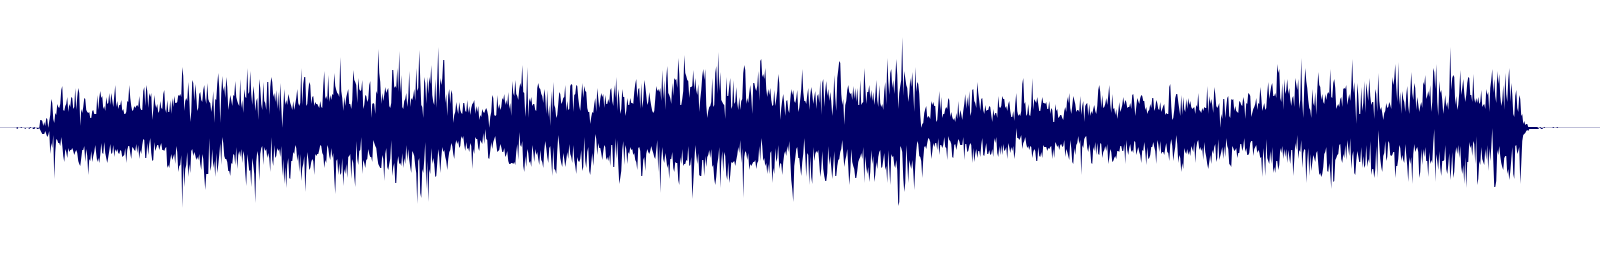 waveform of track #131708